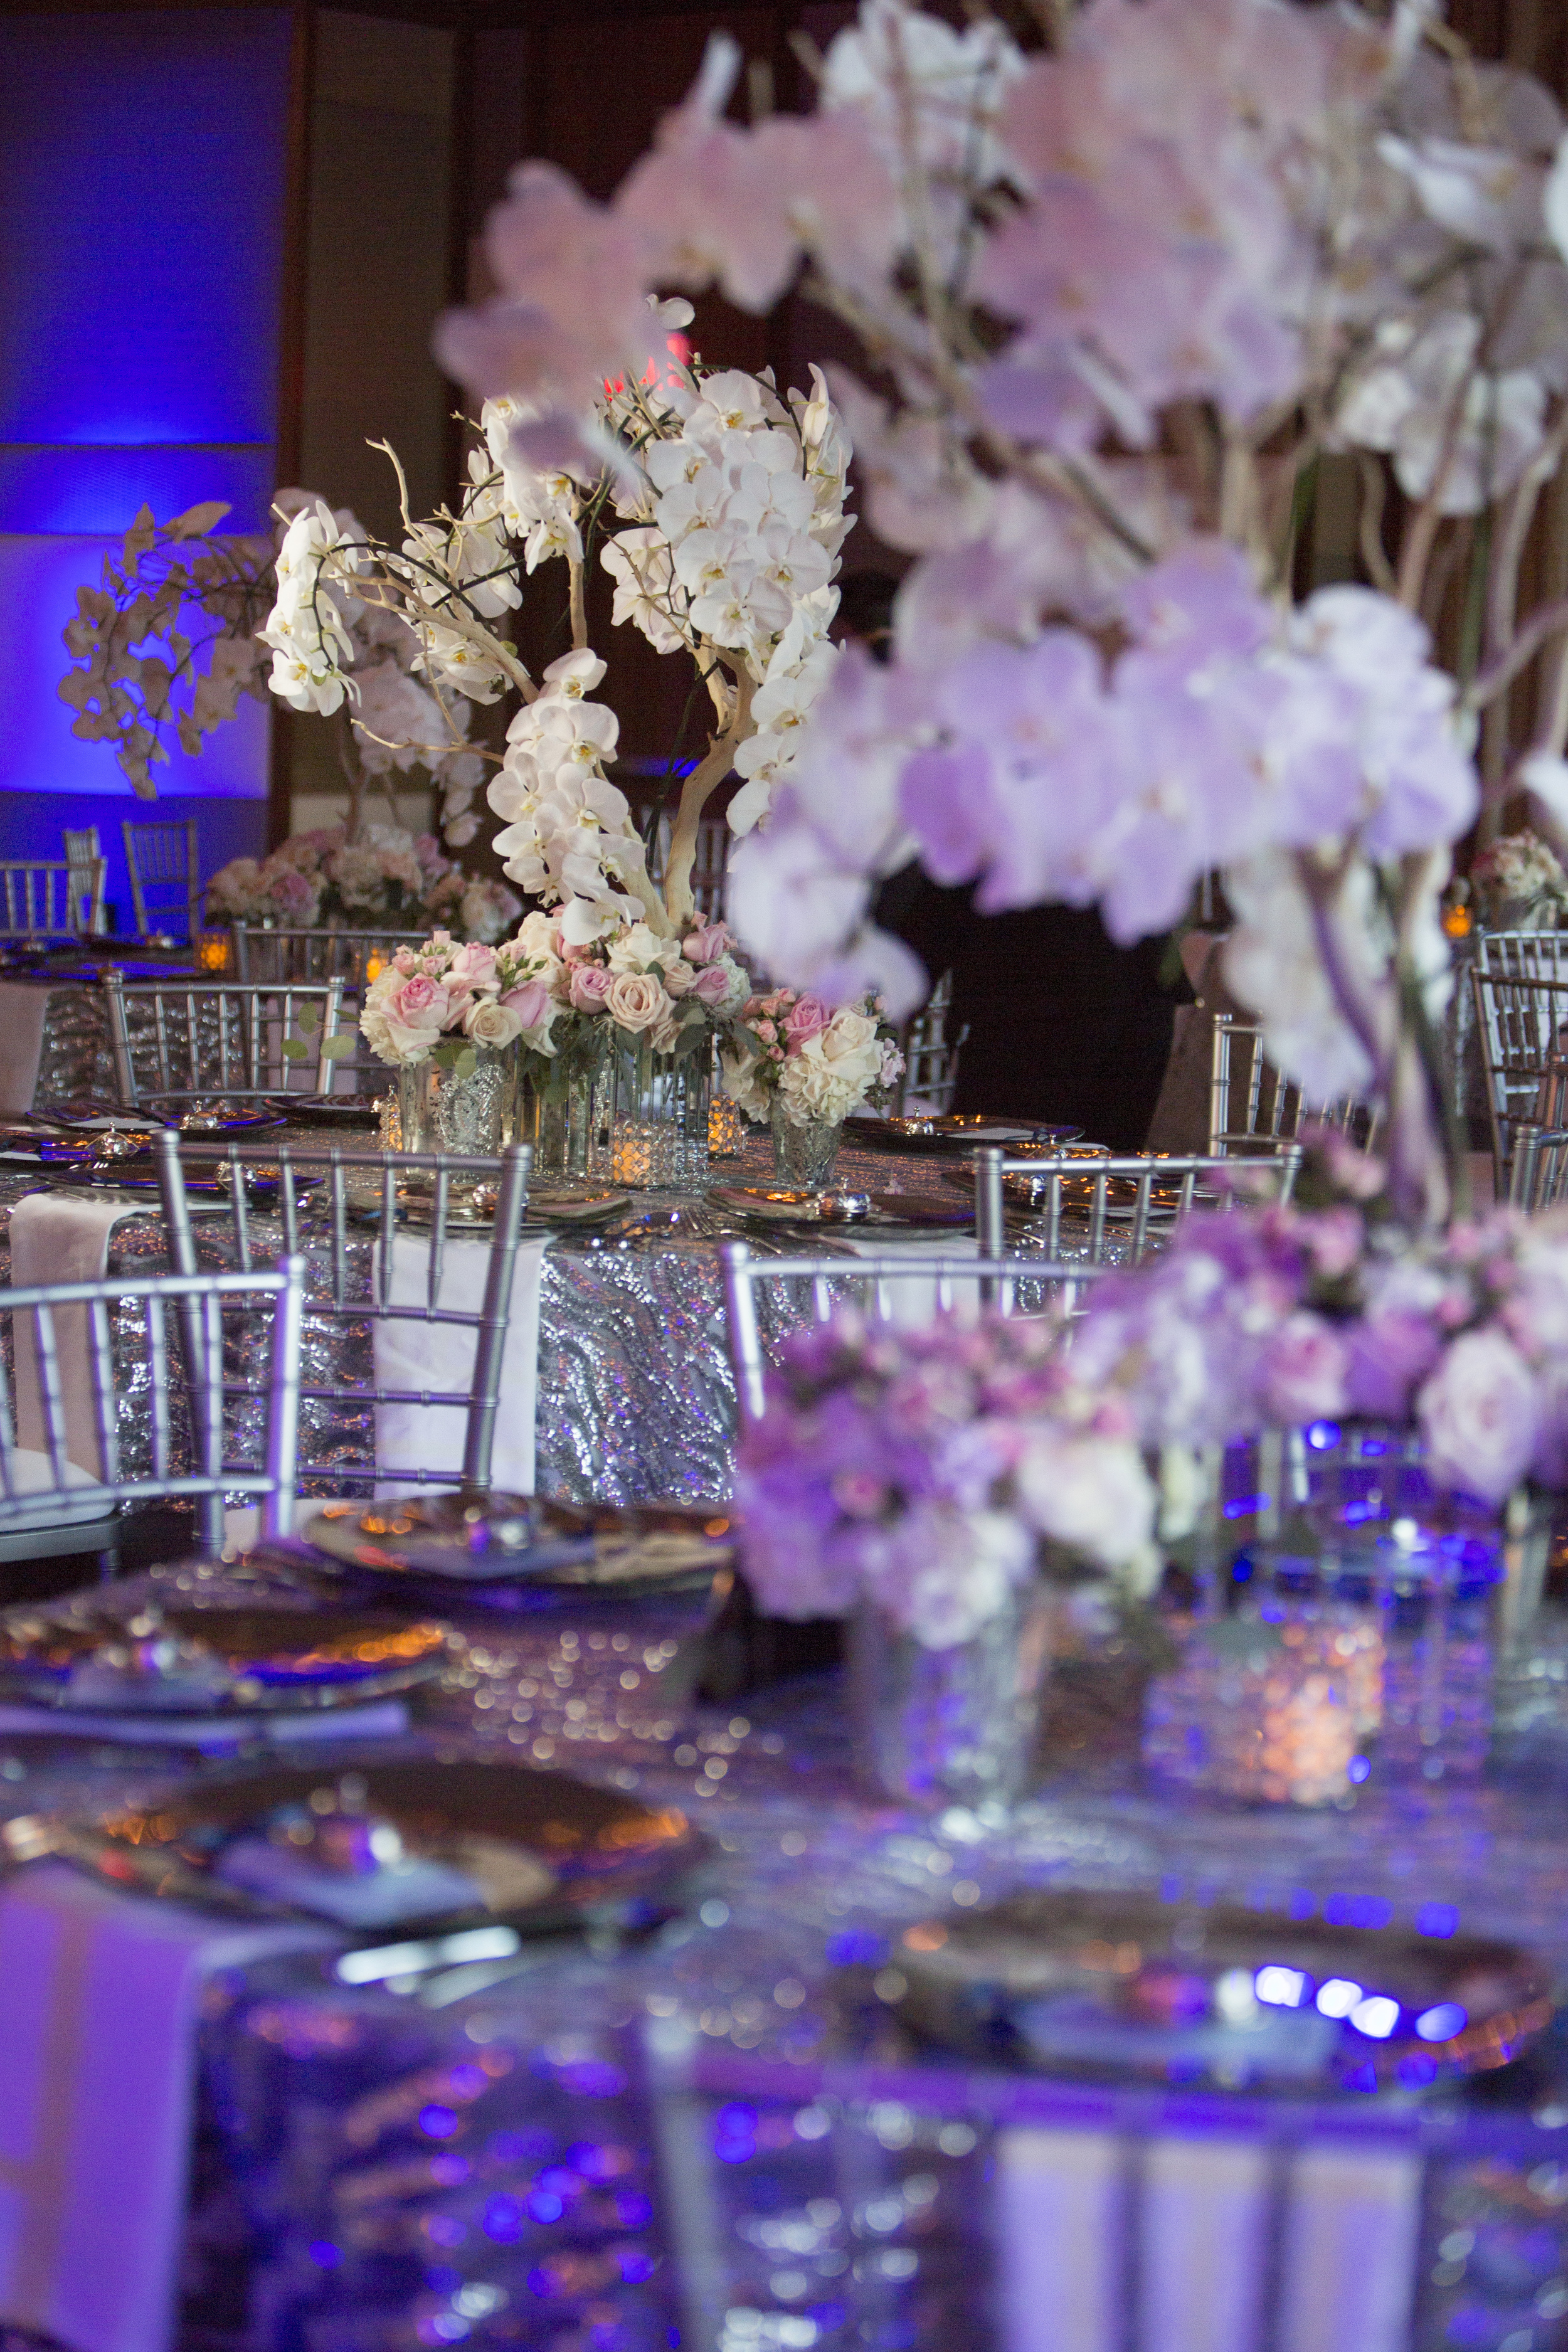 Luxury wedding reception featuring orchid trees, roses, silver table cloths, and chiavari chairs. Blue lighting.  Las Vegas Wedding Planner Andrea Eppolito. Photo by Altf. Florals  , Decor, and Entertainment by DBD Vegas.